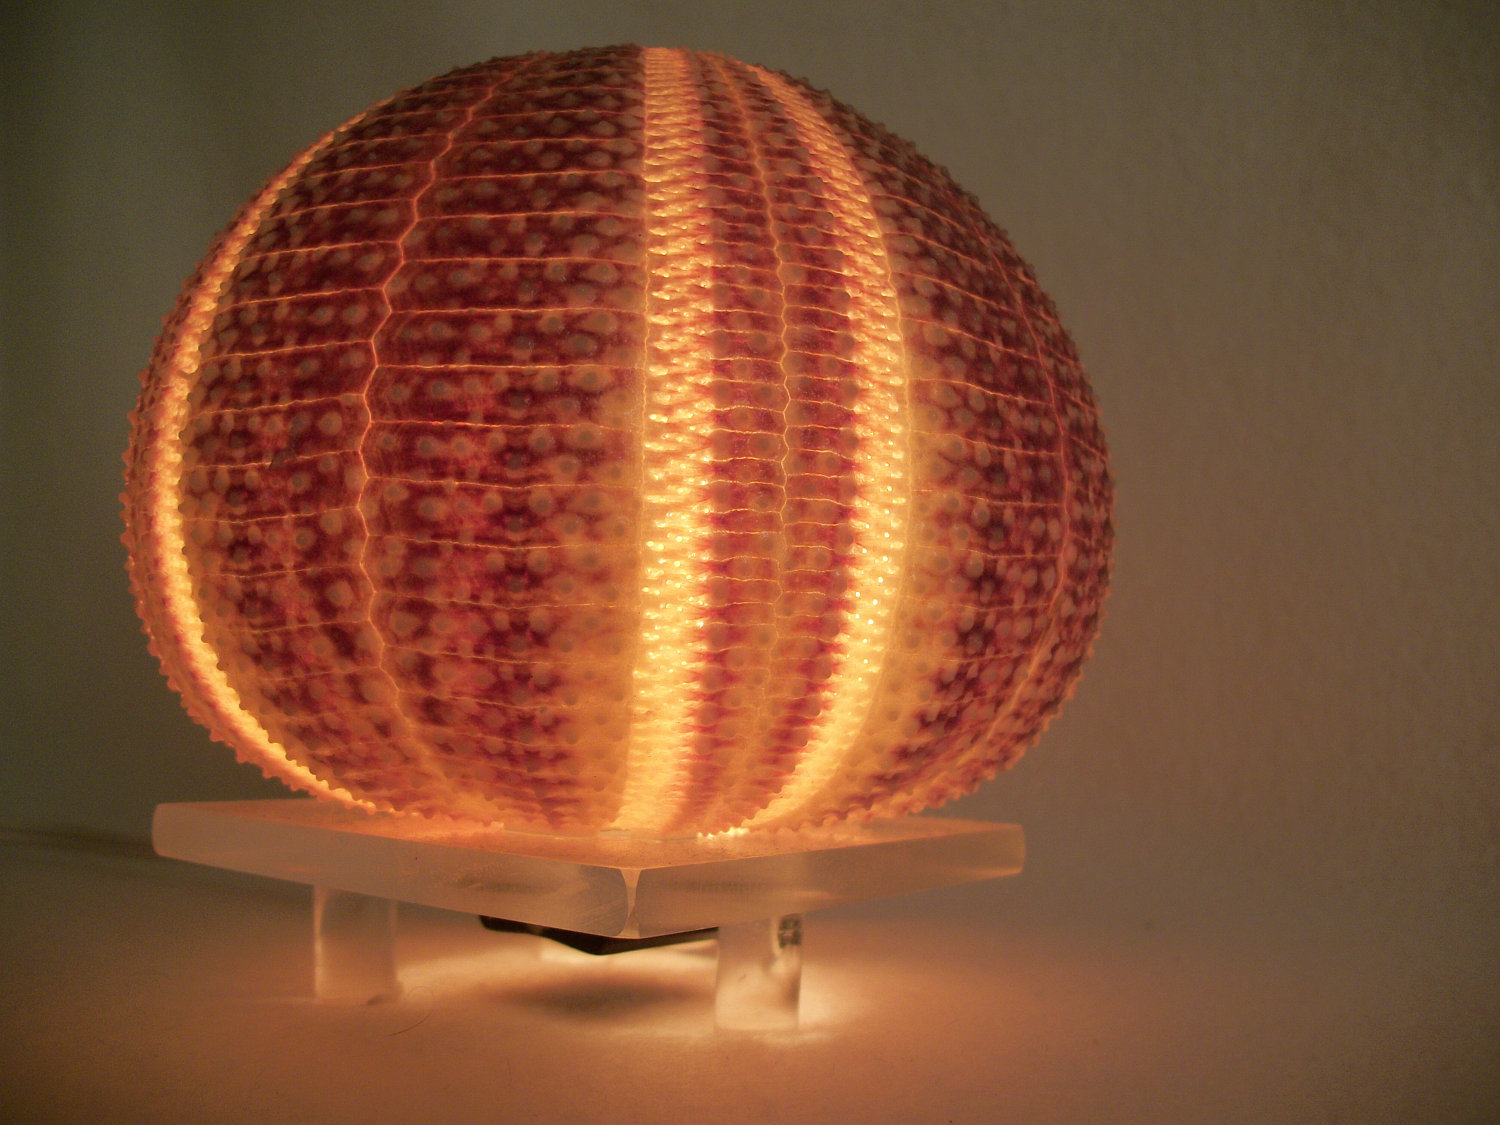 Sea Urchin Lamp The Design Of The Aquatic Animal